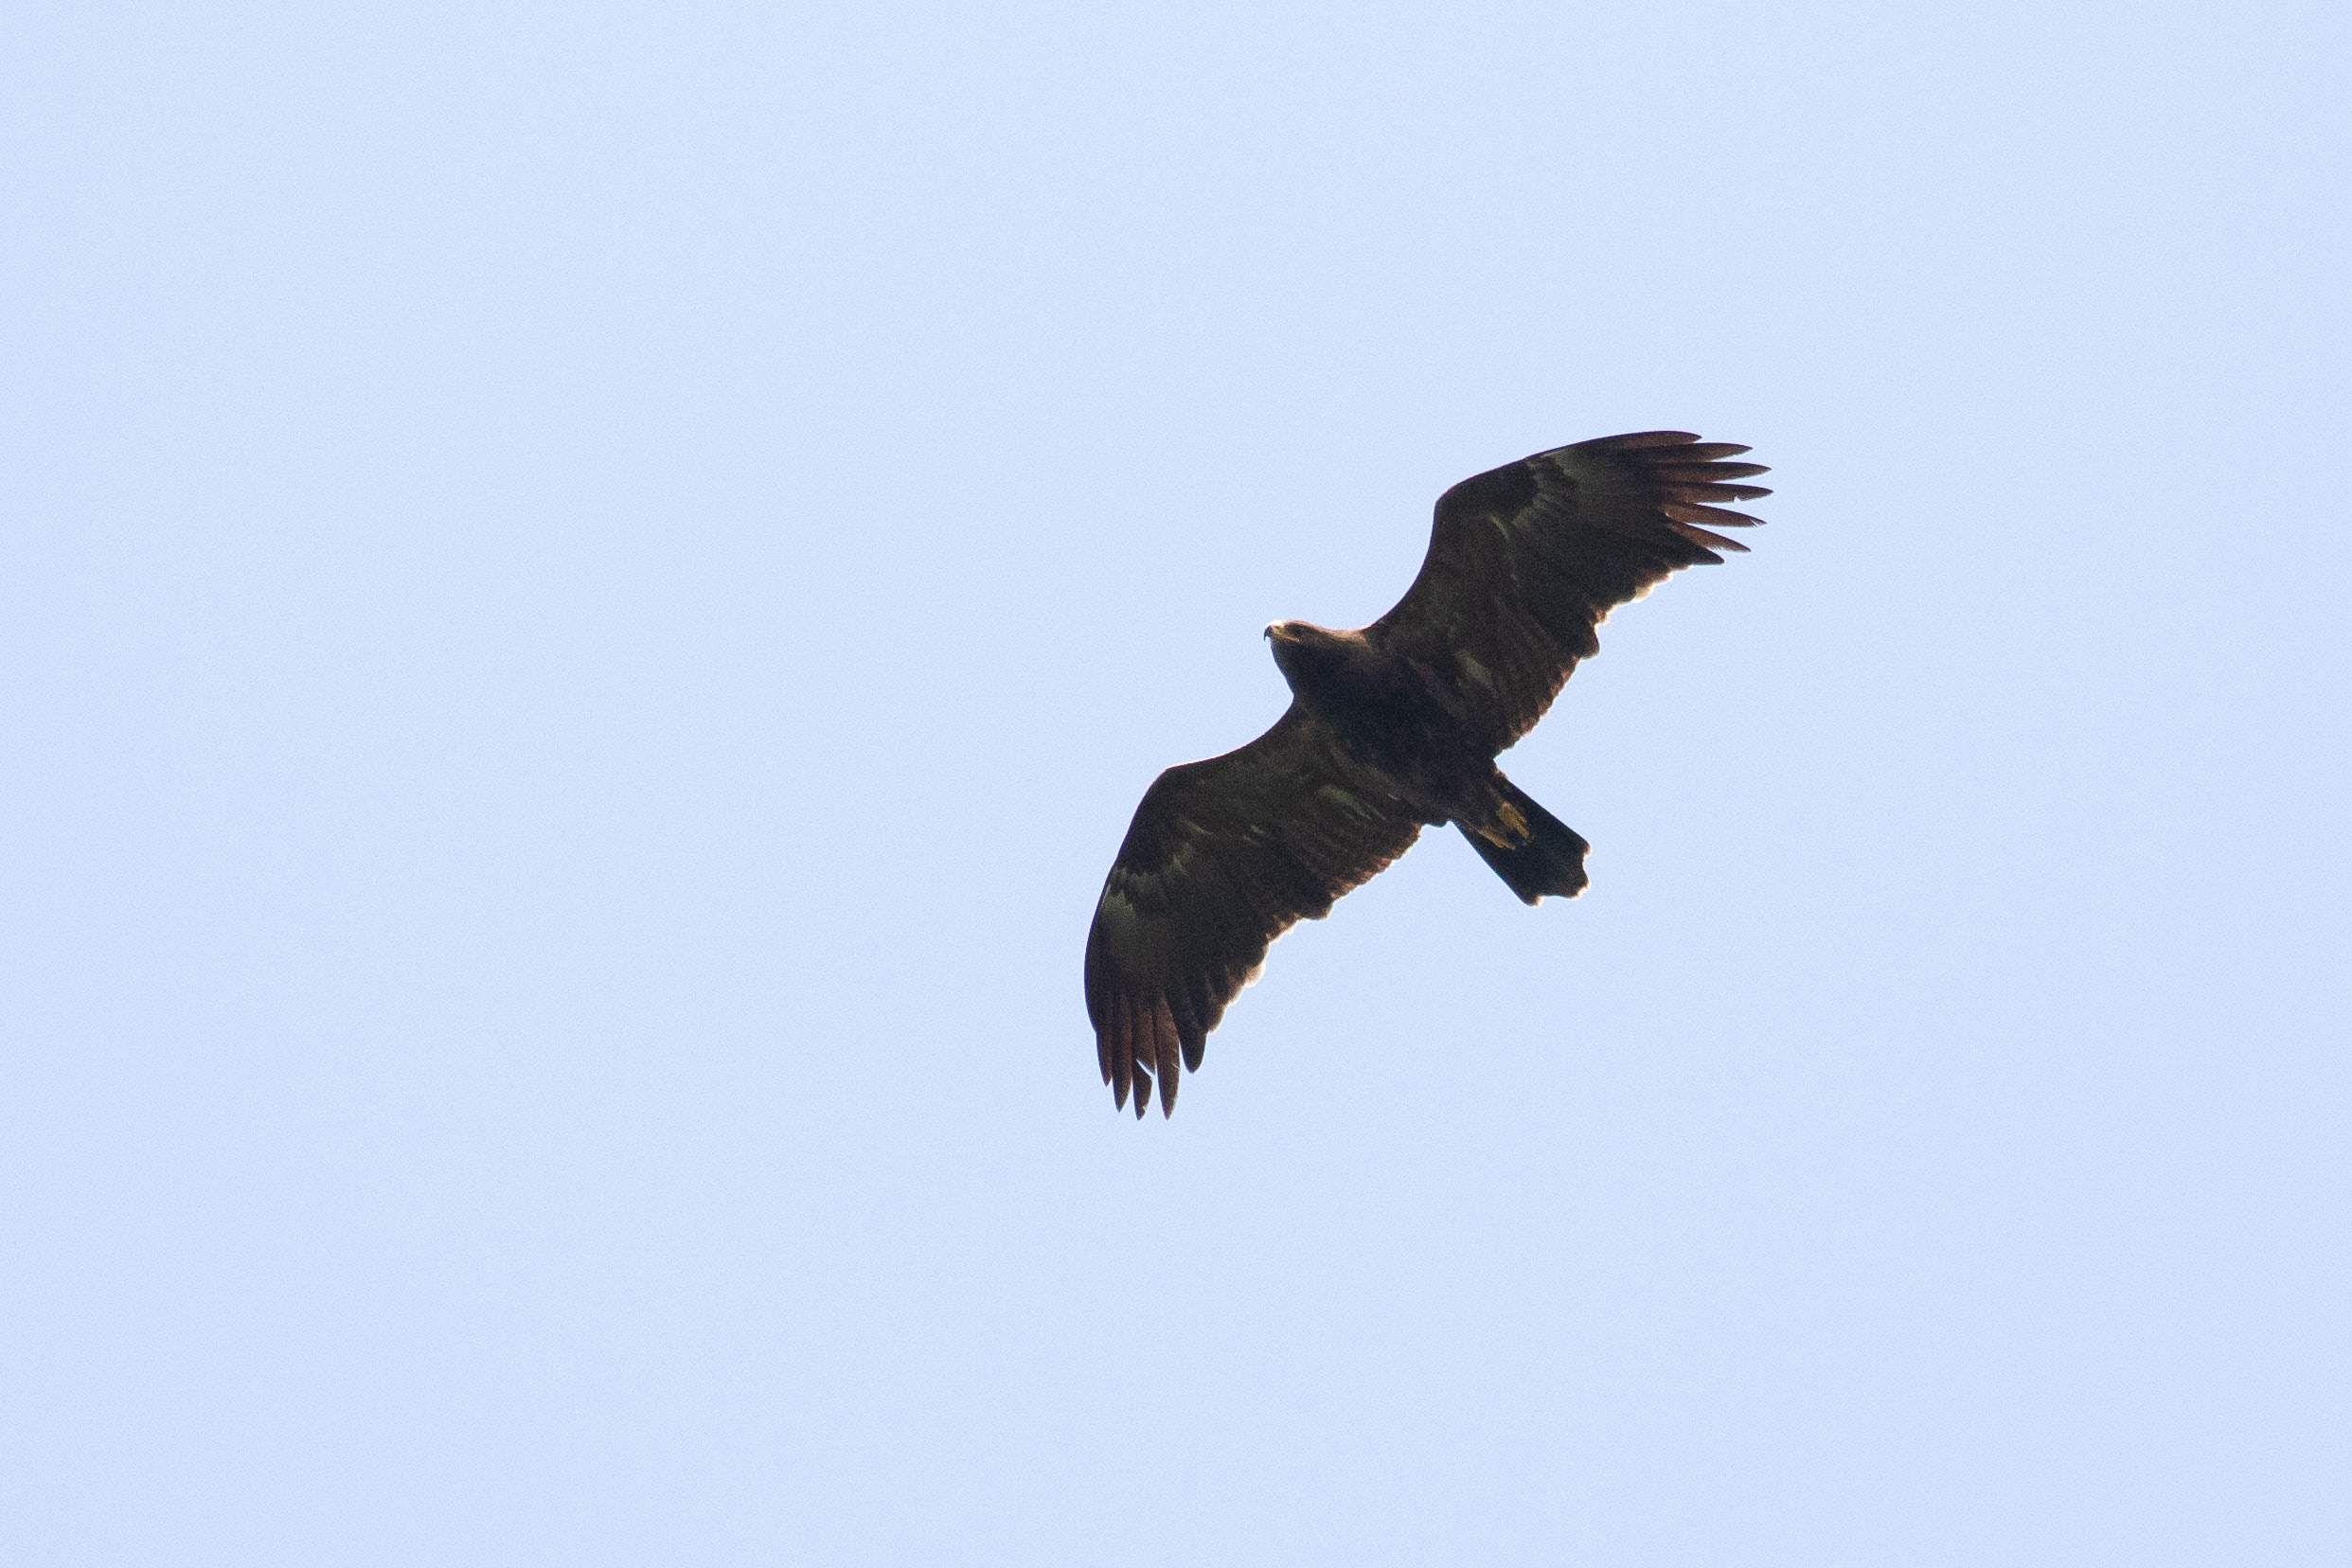 September 16th.  Immature (2cy) Lesser Spotted Eagle with fresh inner primaries and the third secondary (S3) counting inwards replaced on both wings.